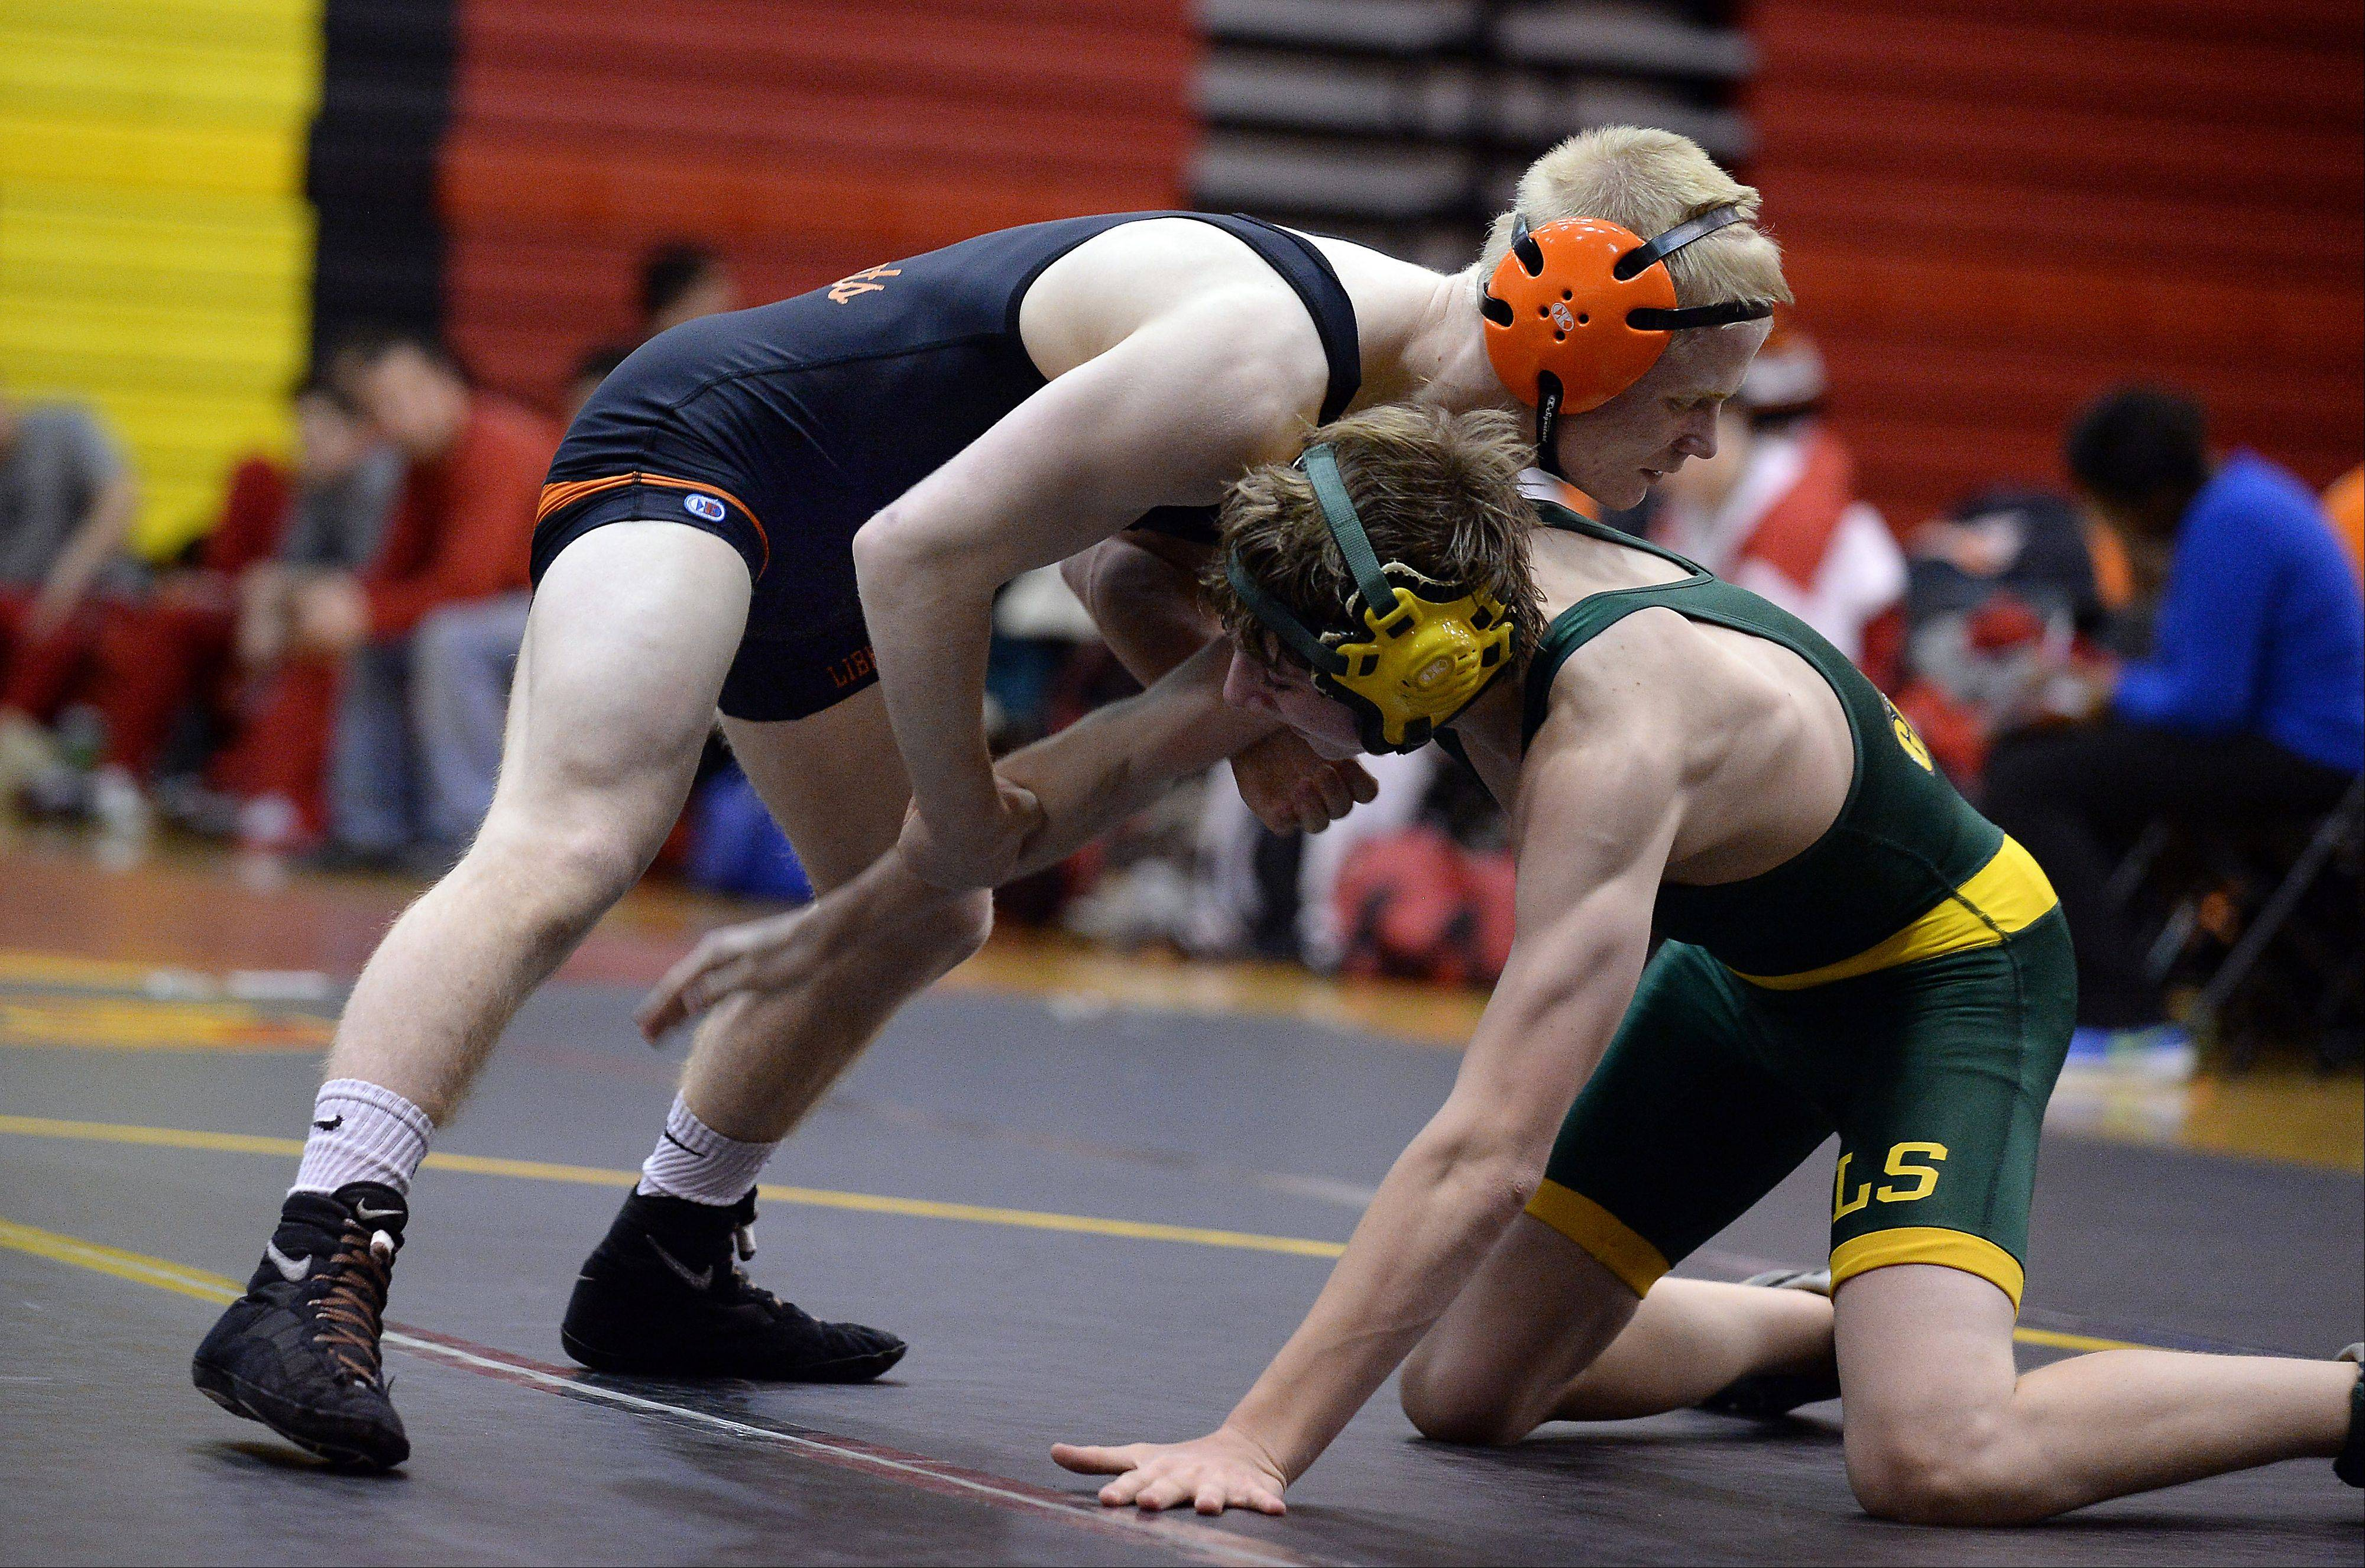 Libertyville's Steve Polakowski, top, handles Crystal Lake South's Joe Fetherling for a win at 126 pounds on Saturday at Schaumburg.